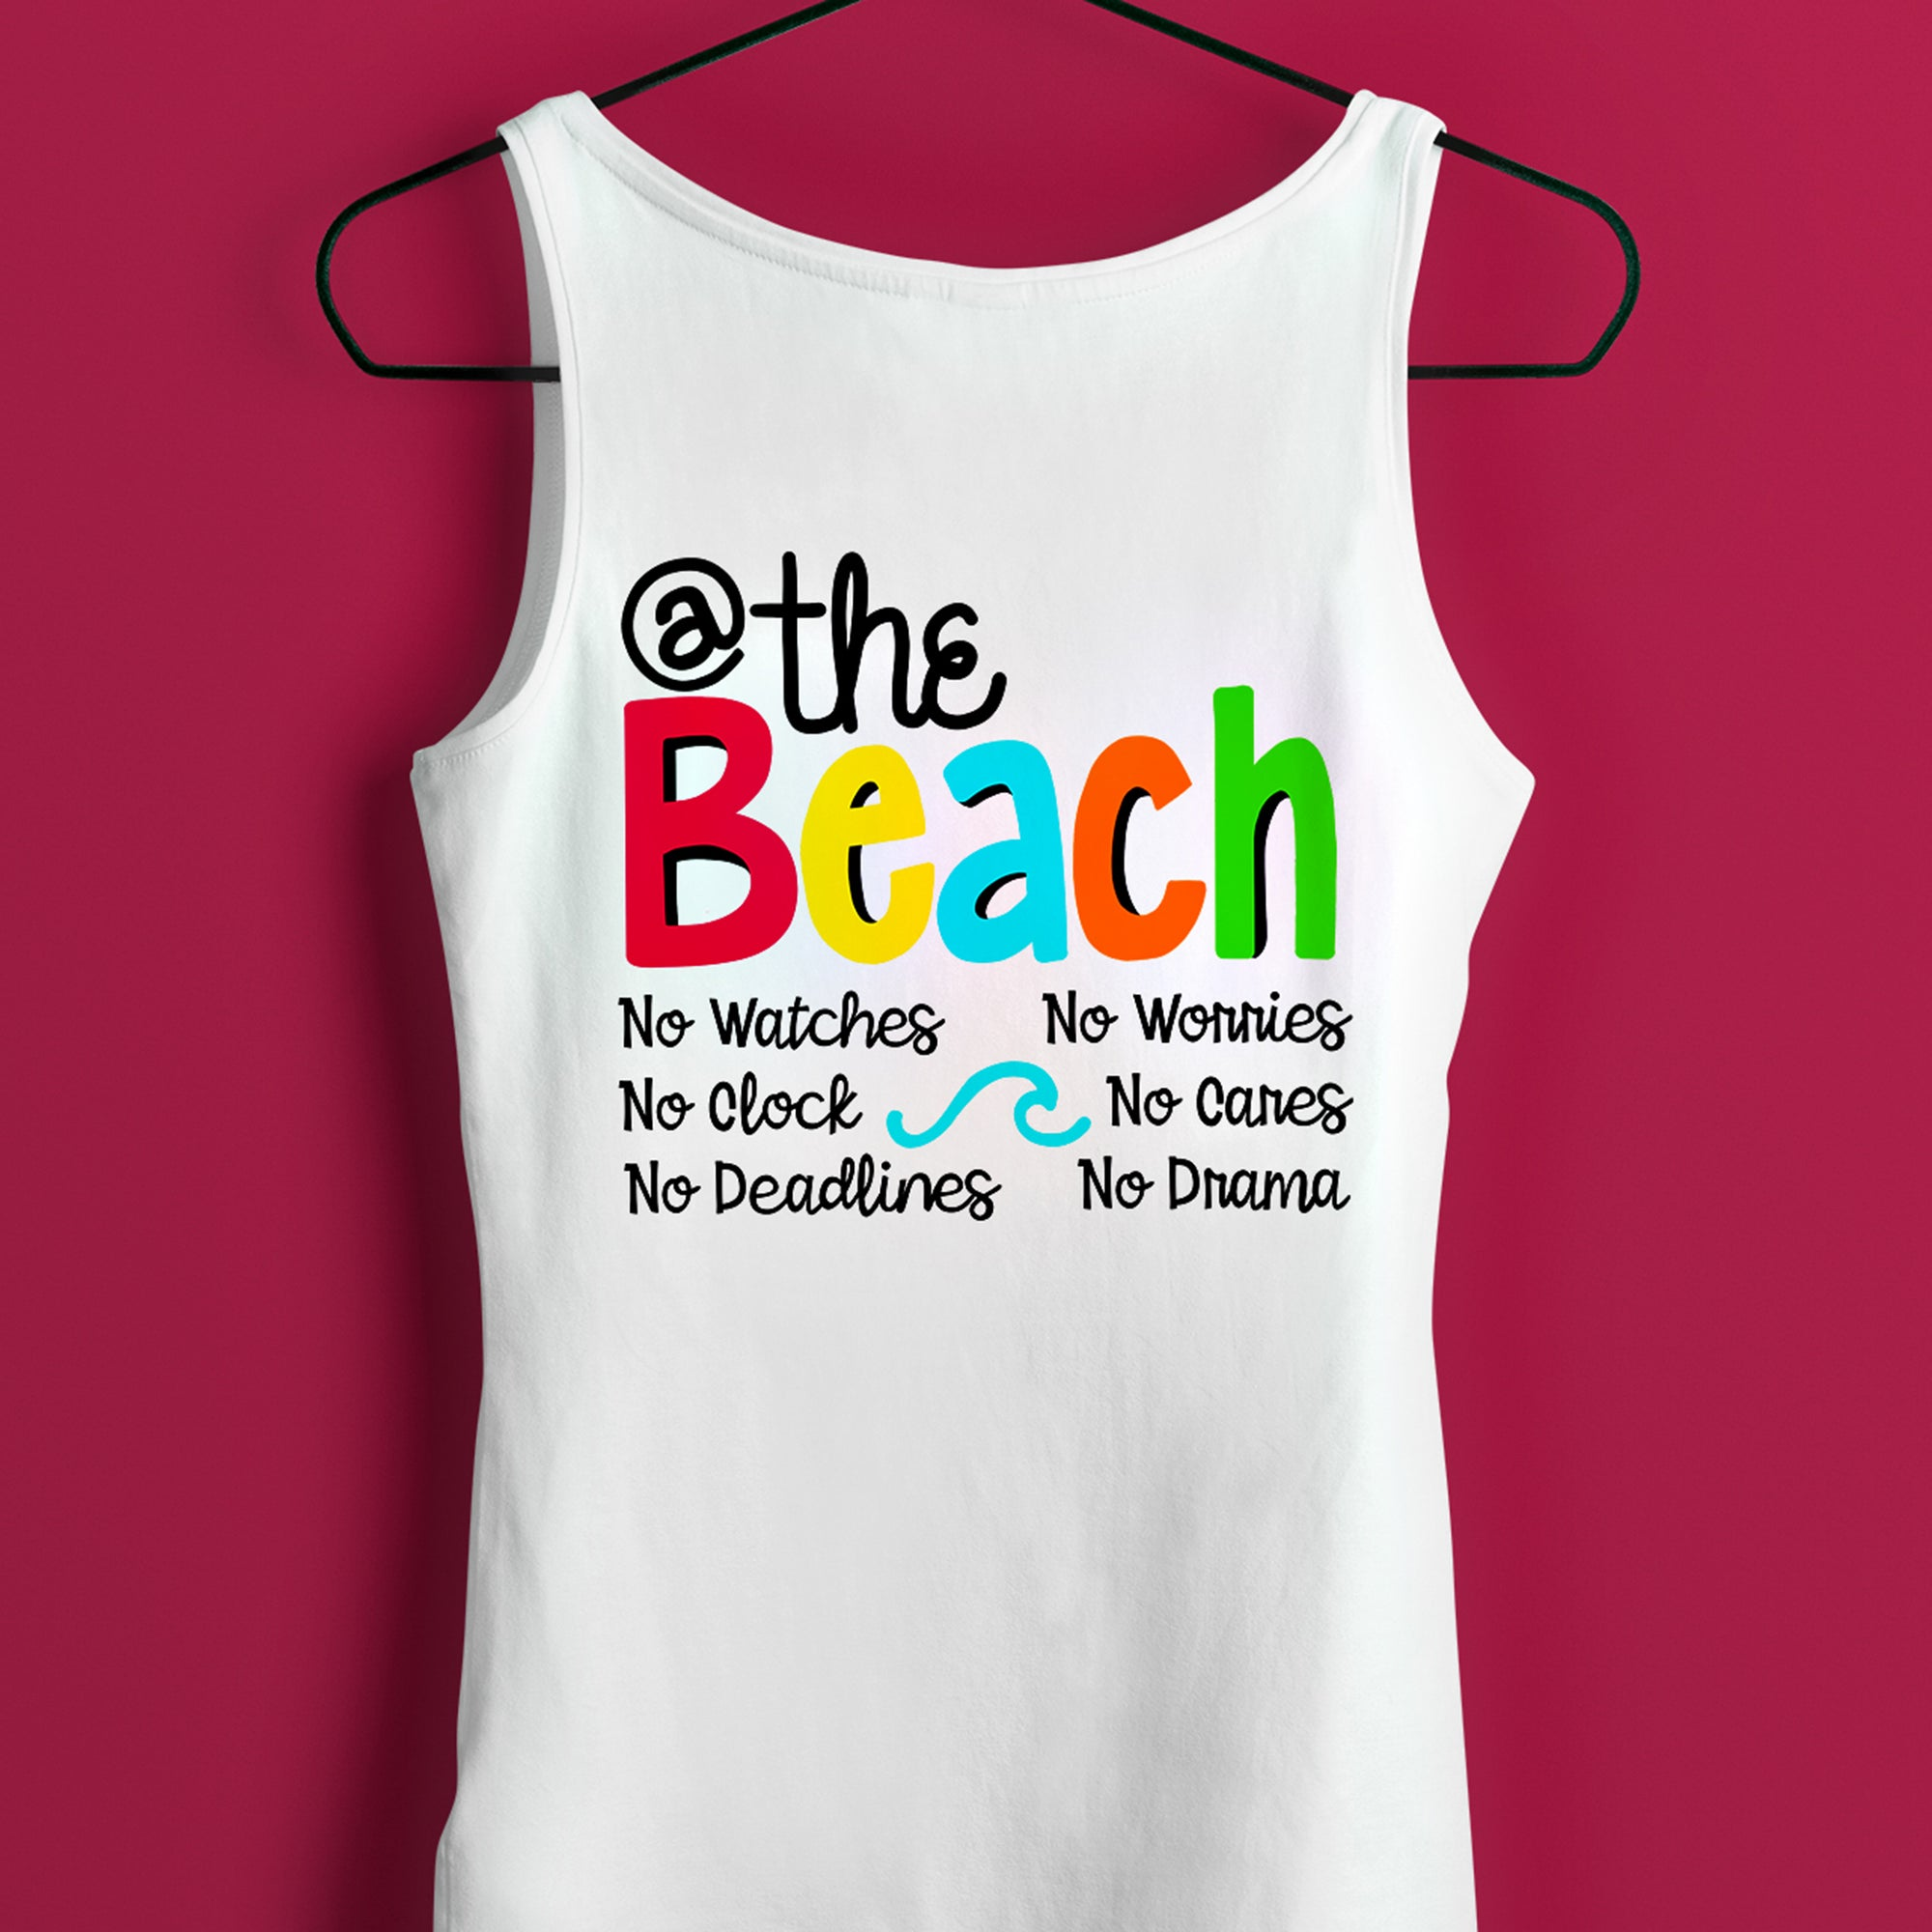 At the Beach SVG File, Beach SVG, Beach Saying SVG, Beach Quote SVG, Beach Shirt SVG, Vinyl Sayings Beach